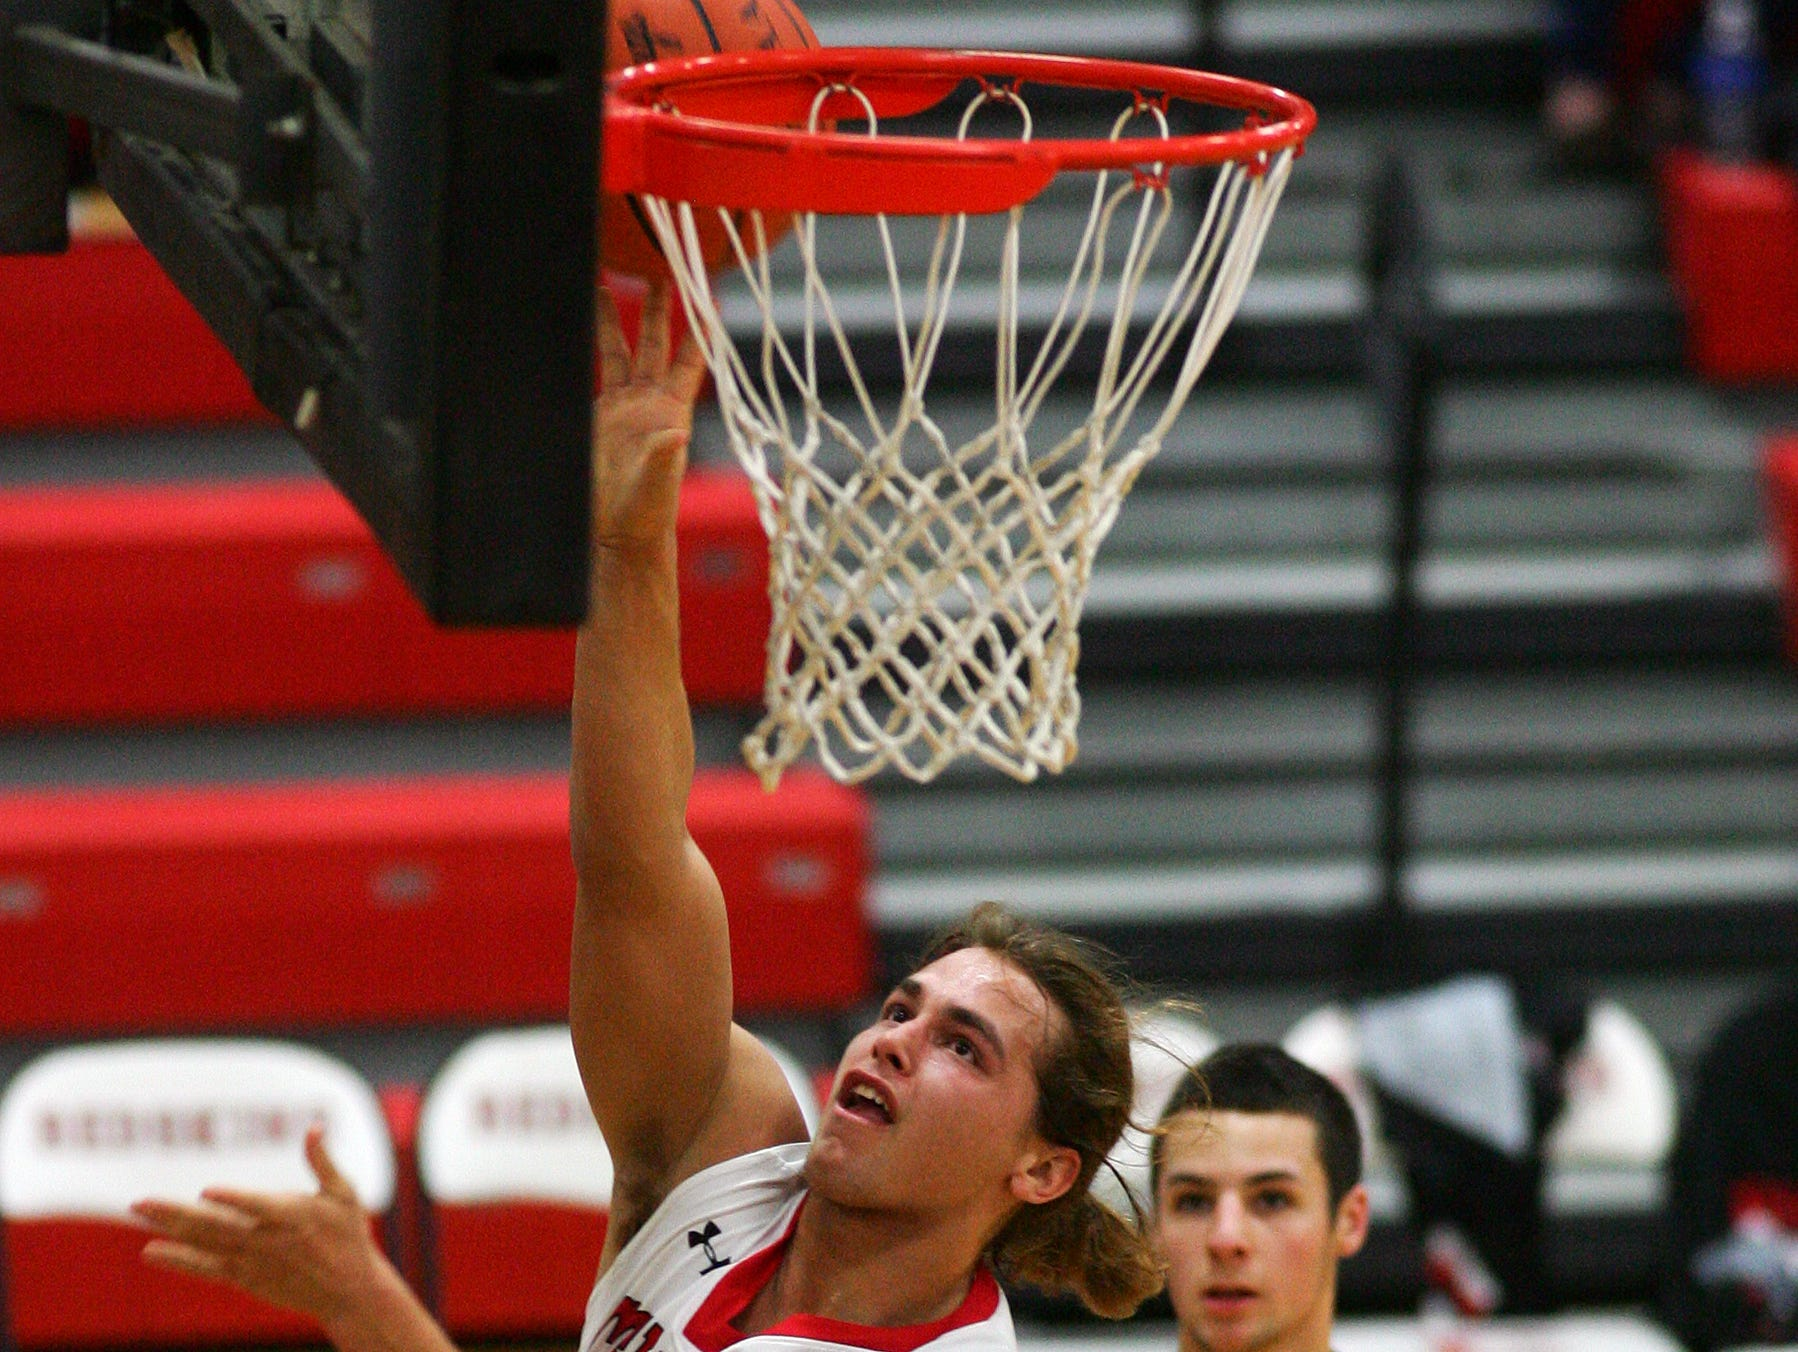 Coshocton junior Dallas Griffiths reaches for the basket Friday during the team's 69-68 loss to Bishop Rosecrans in overtime.